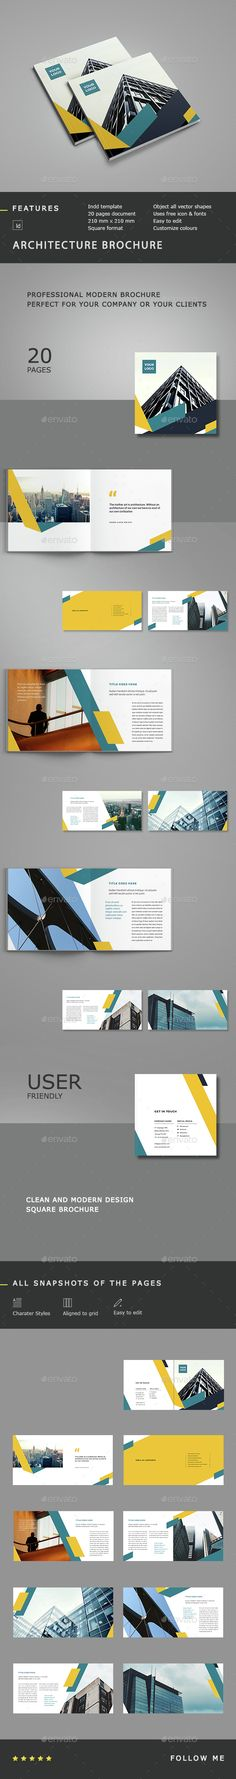 Buy Architecture Square Brochure by silukEight on GraphicRiver. Architecture Square Brochure Template is clean, modern and professional. Catalogue Design Templates, Booklet Design, Catalog Design, Print Templates, Brochure Inspiration, Graphic Design Inspiration, Print Layout, Layout Design, Leaflet Layout